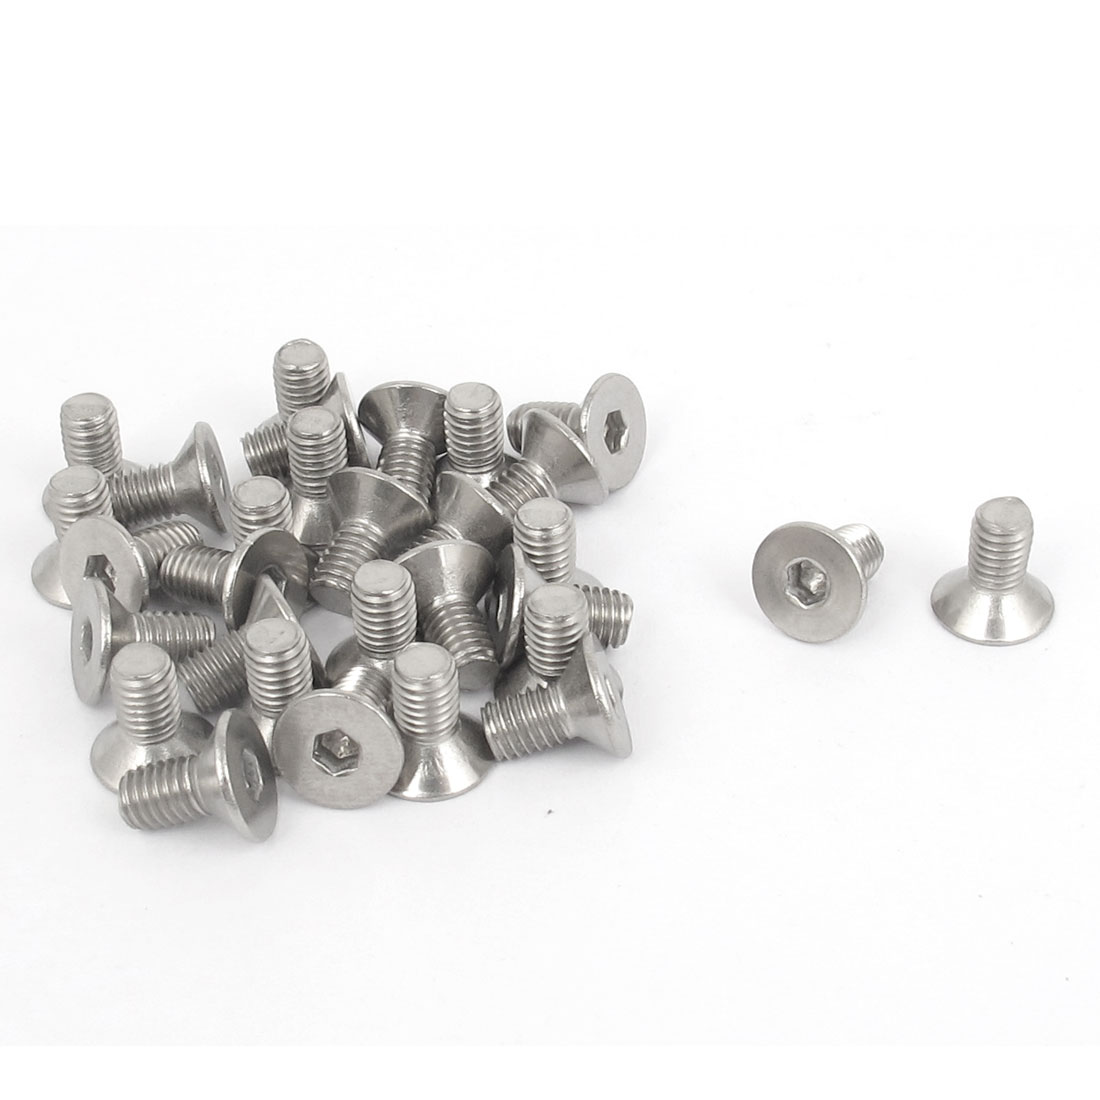 M5 x 10mm Metric 304 Stainless Steel Hex Socket Countersunk Flat Head Screw Bolts 30PCS